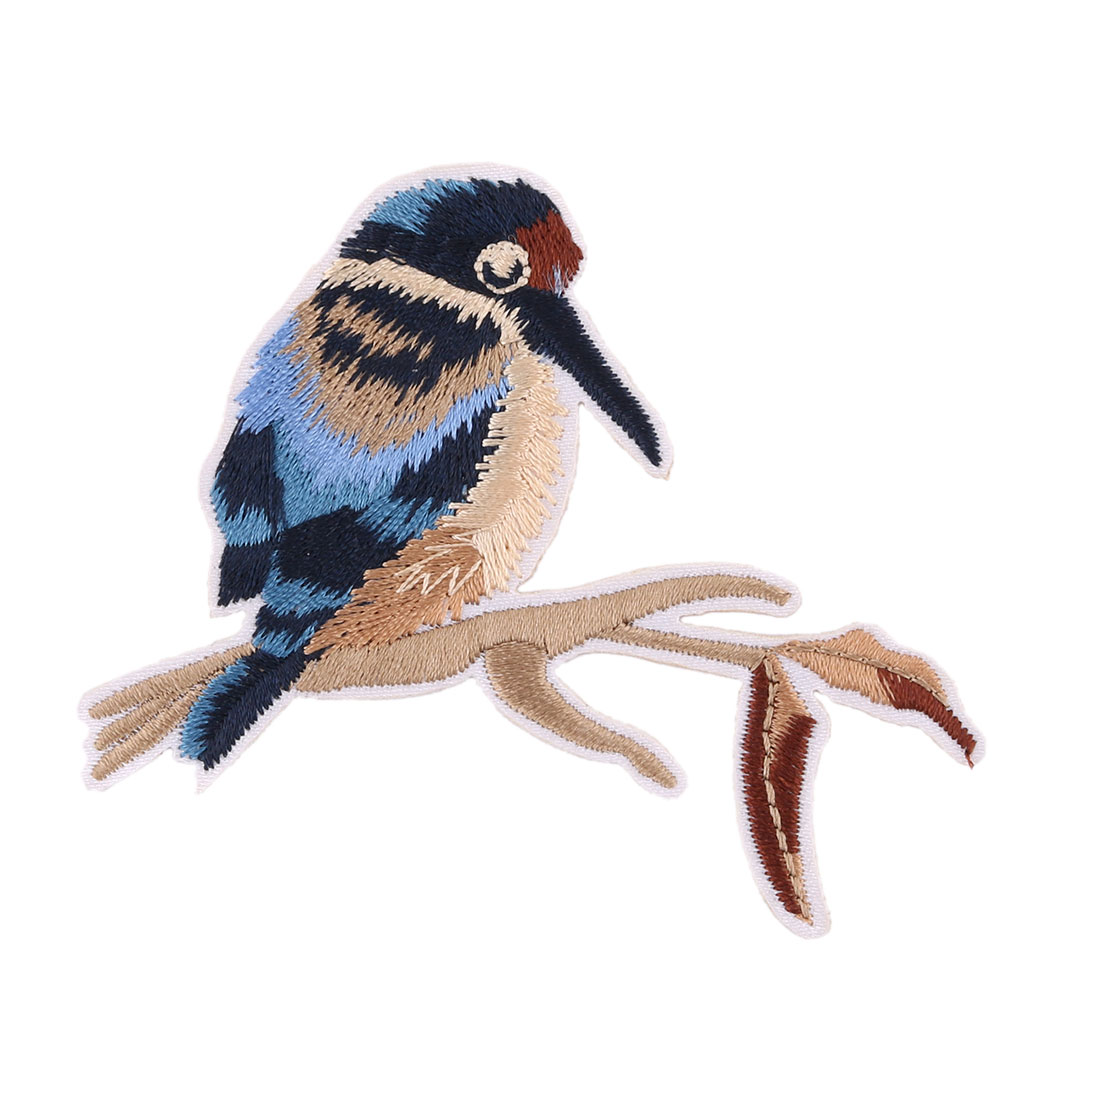 Unique Bargains Household Polyester Bird Pattern Embroidery Handicraft DIY Coat Lace Applique